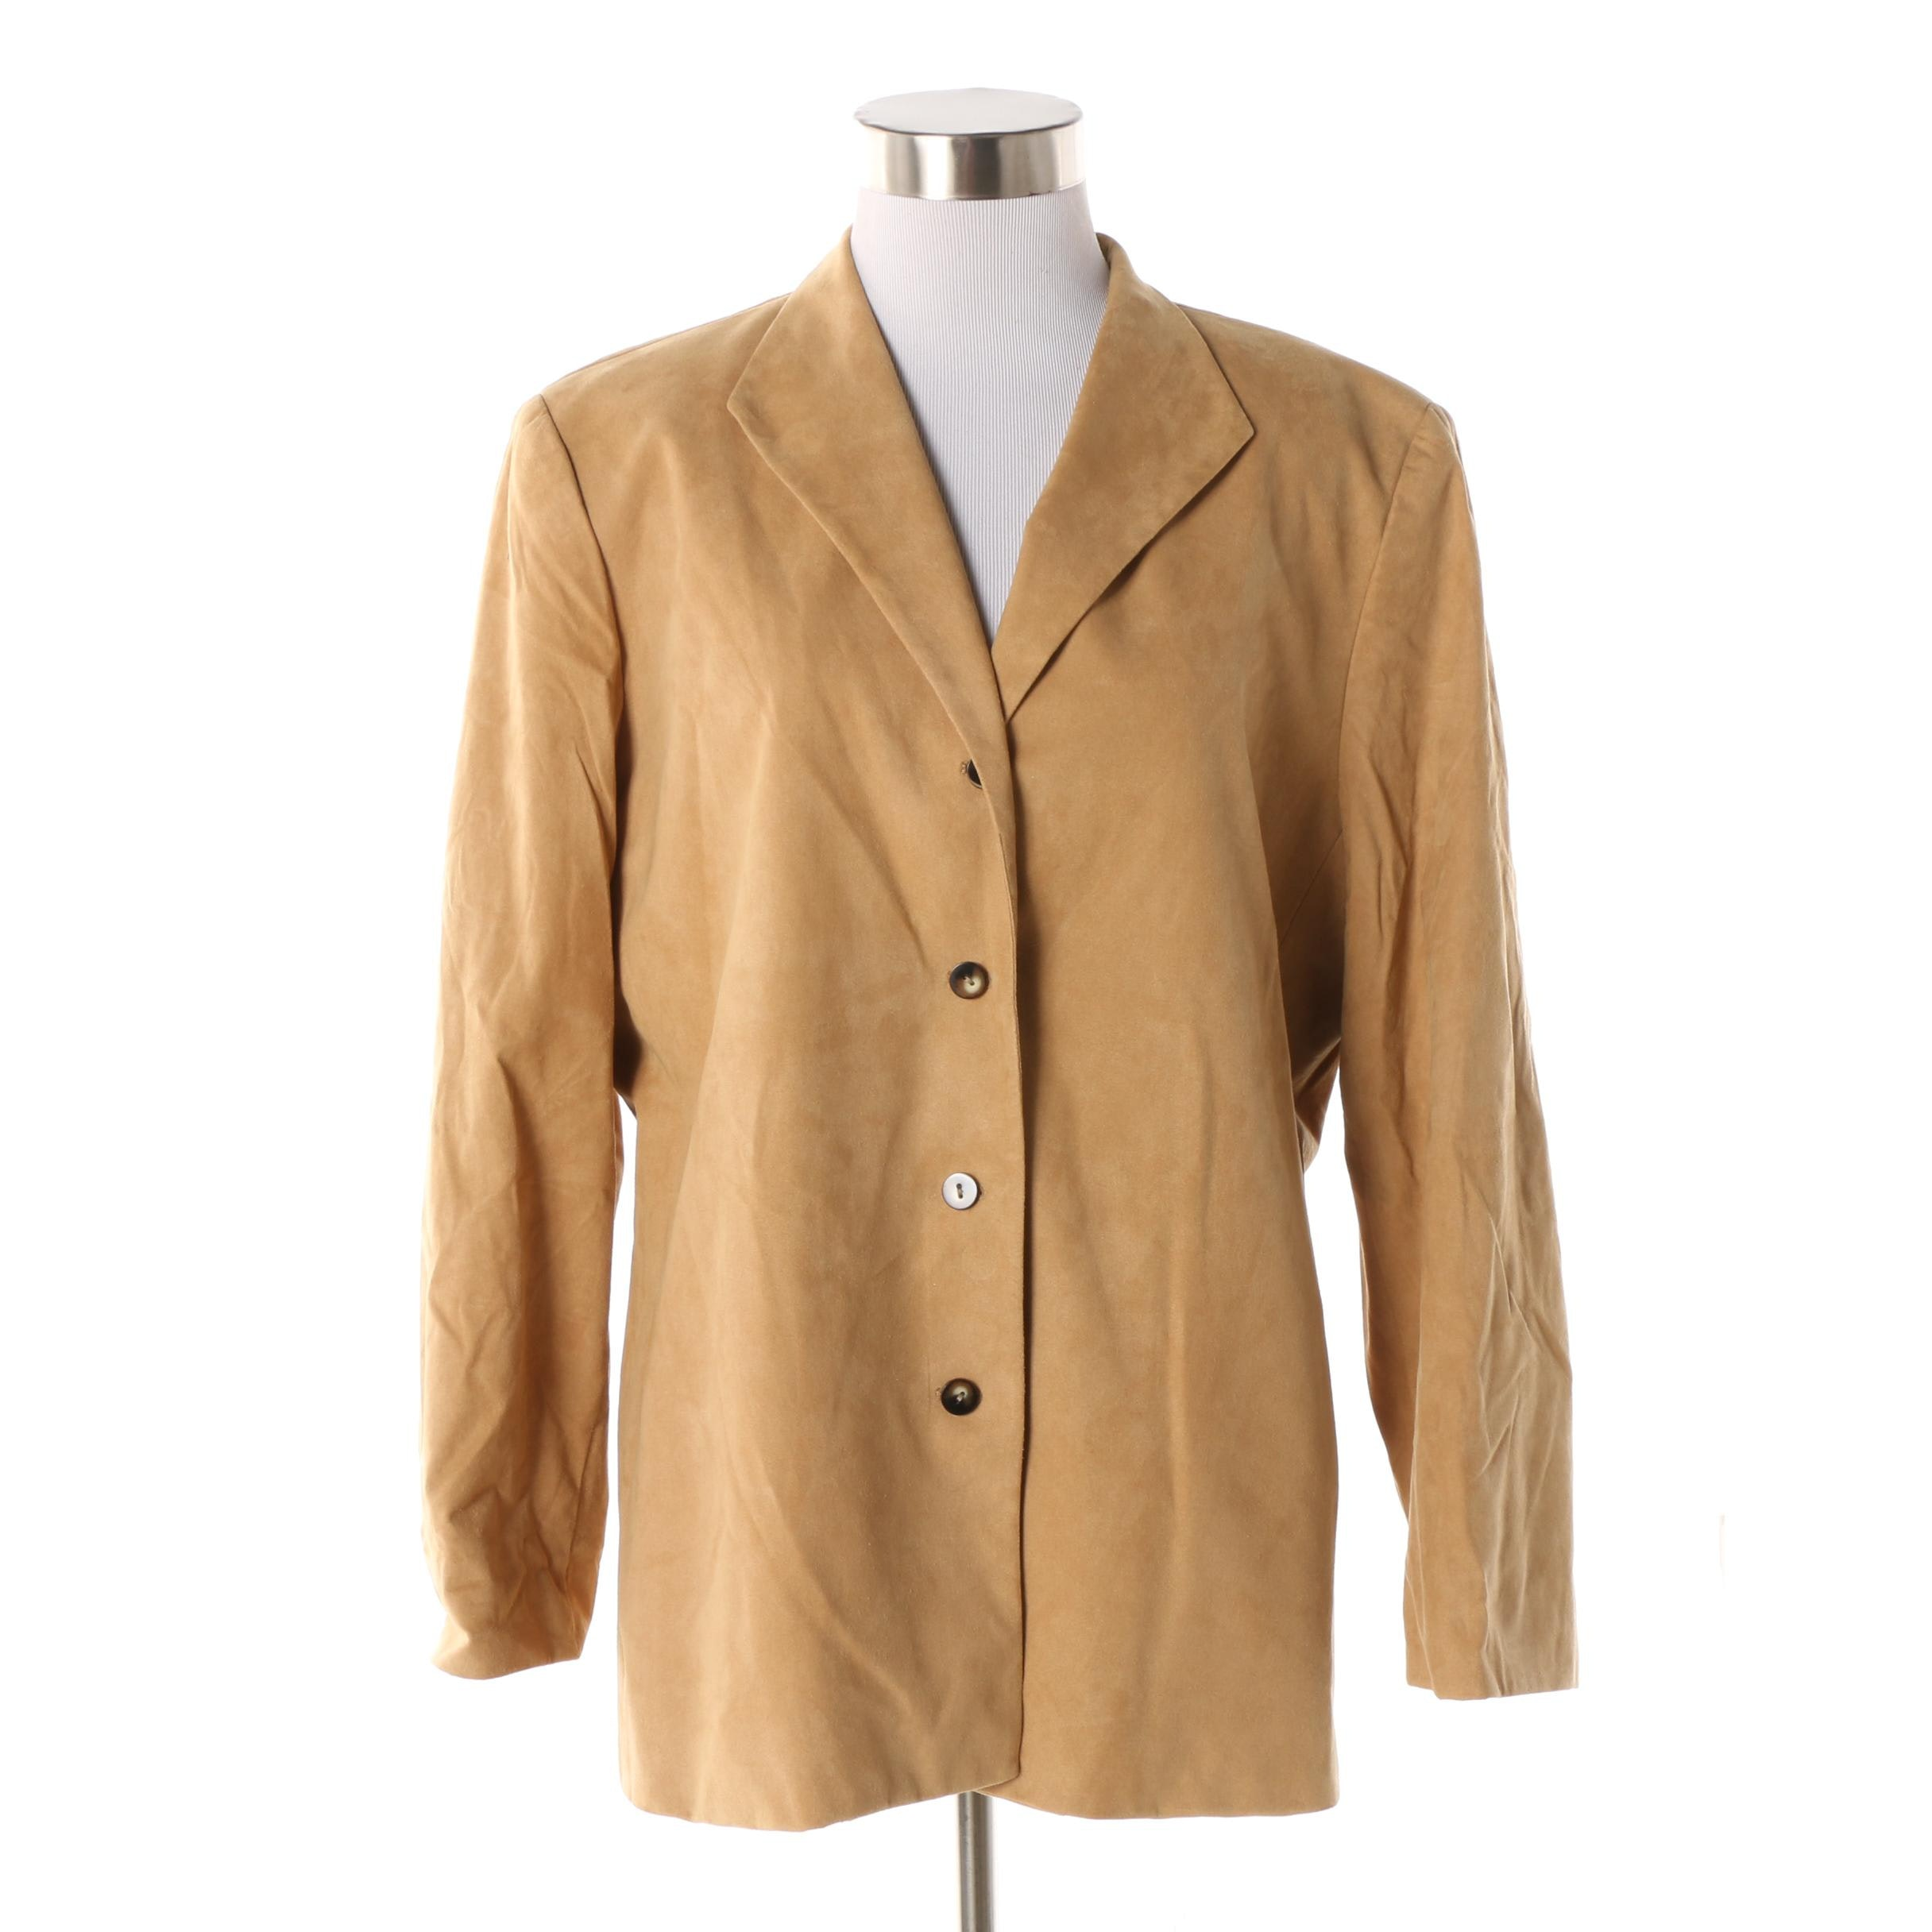 Women's Garfield & Marks Camel-Colored Suede Jacket